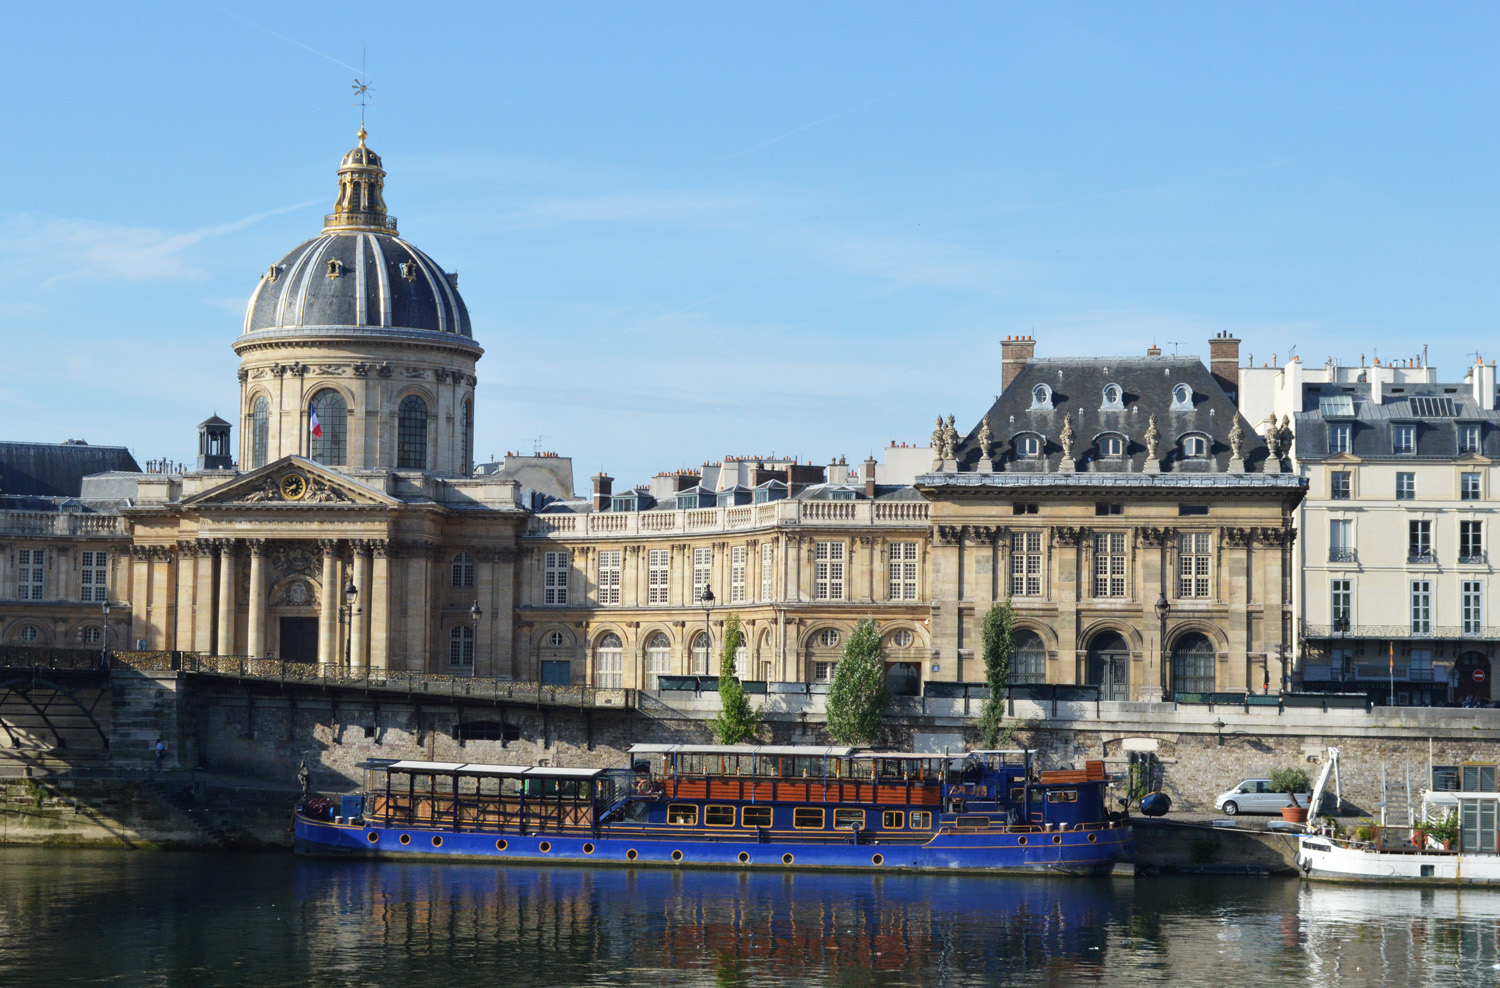 Seine River cruise and views in Paris, France - this article lists 10 amazing things you must not miss in Paris! Have you planned your trip yet? / goseekexplore.com